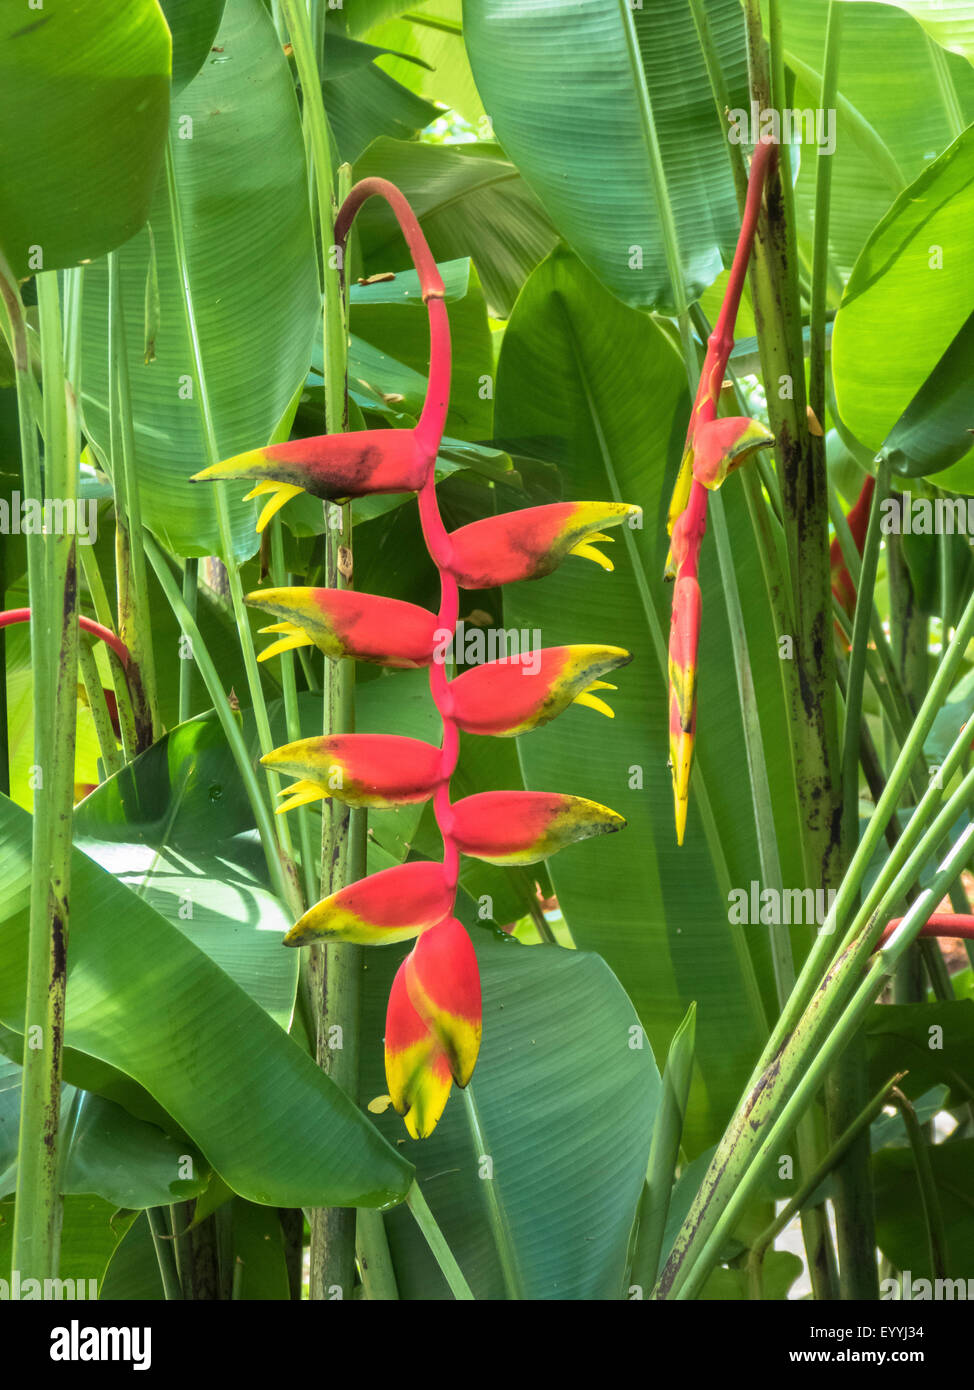 lobster claw heliconia (Heliconia rostrata), inflorescence, Singapore - Stock Image